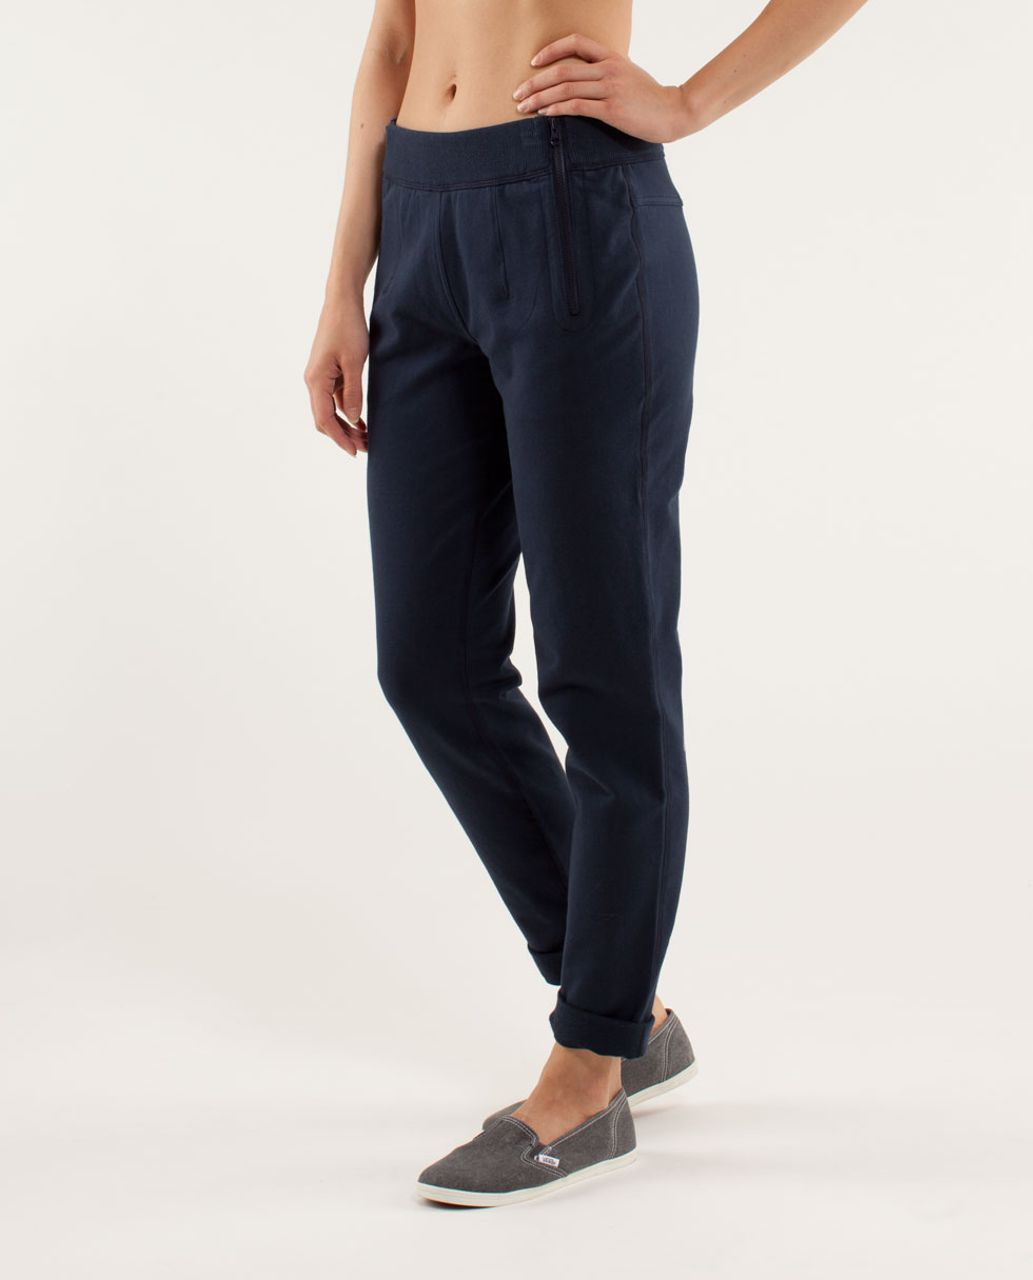 Lululemon Rejuvenate Sweat Pant - Inkwell